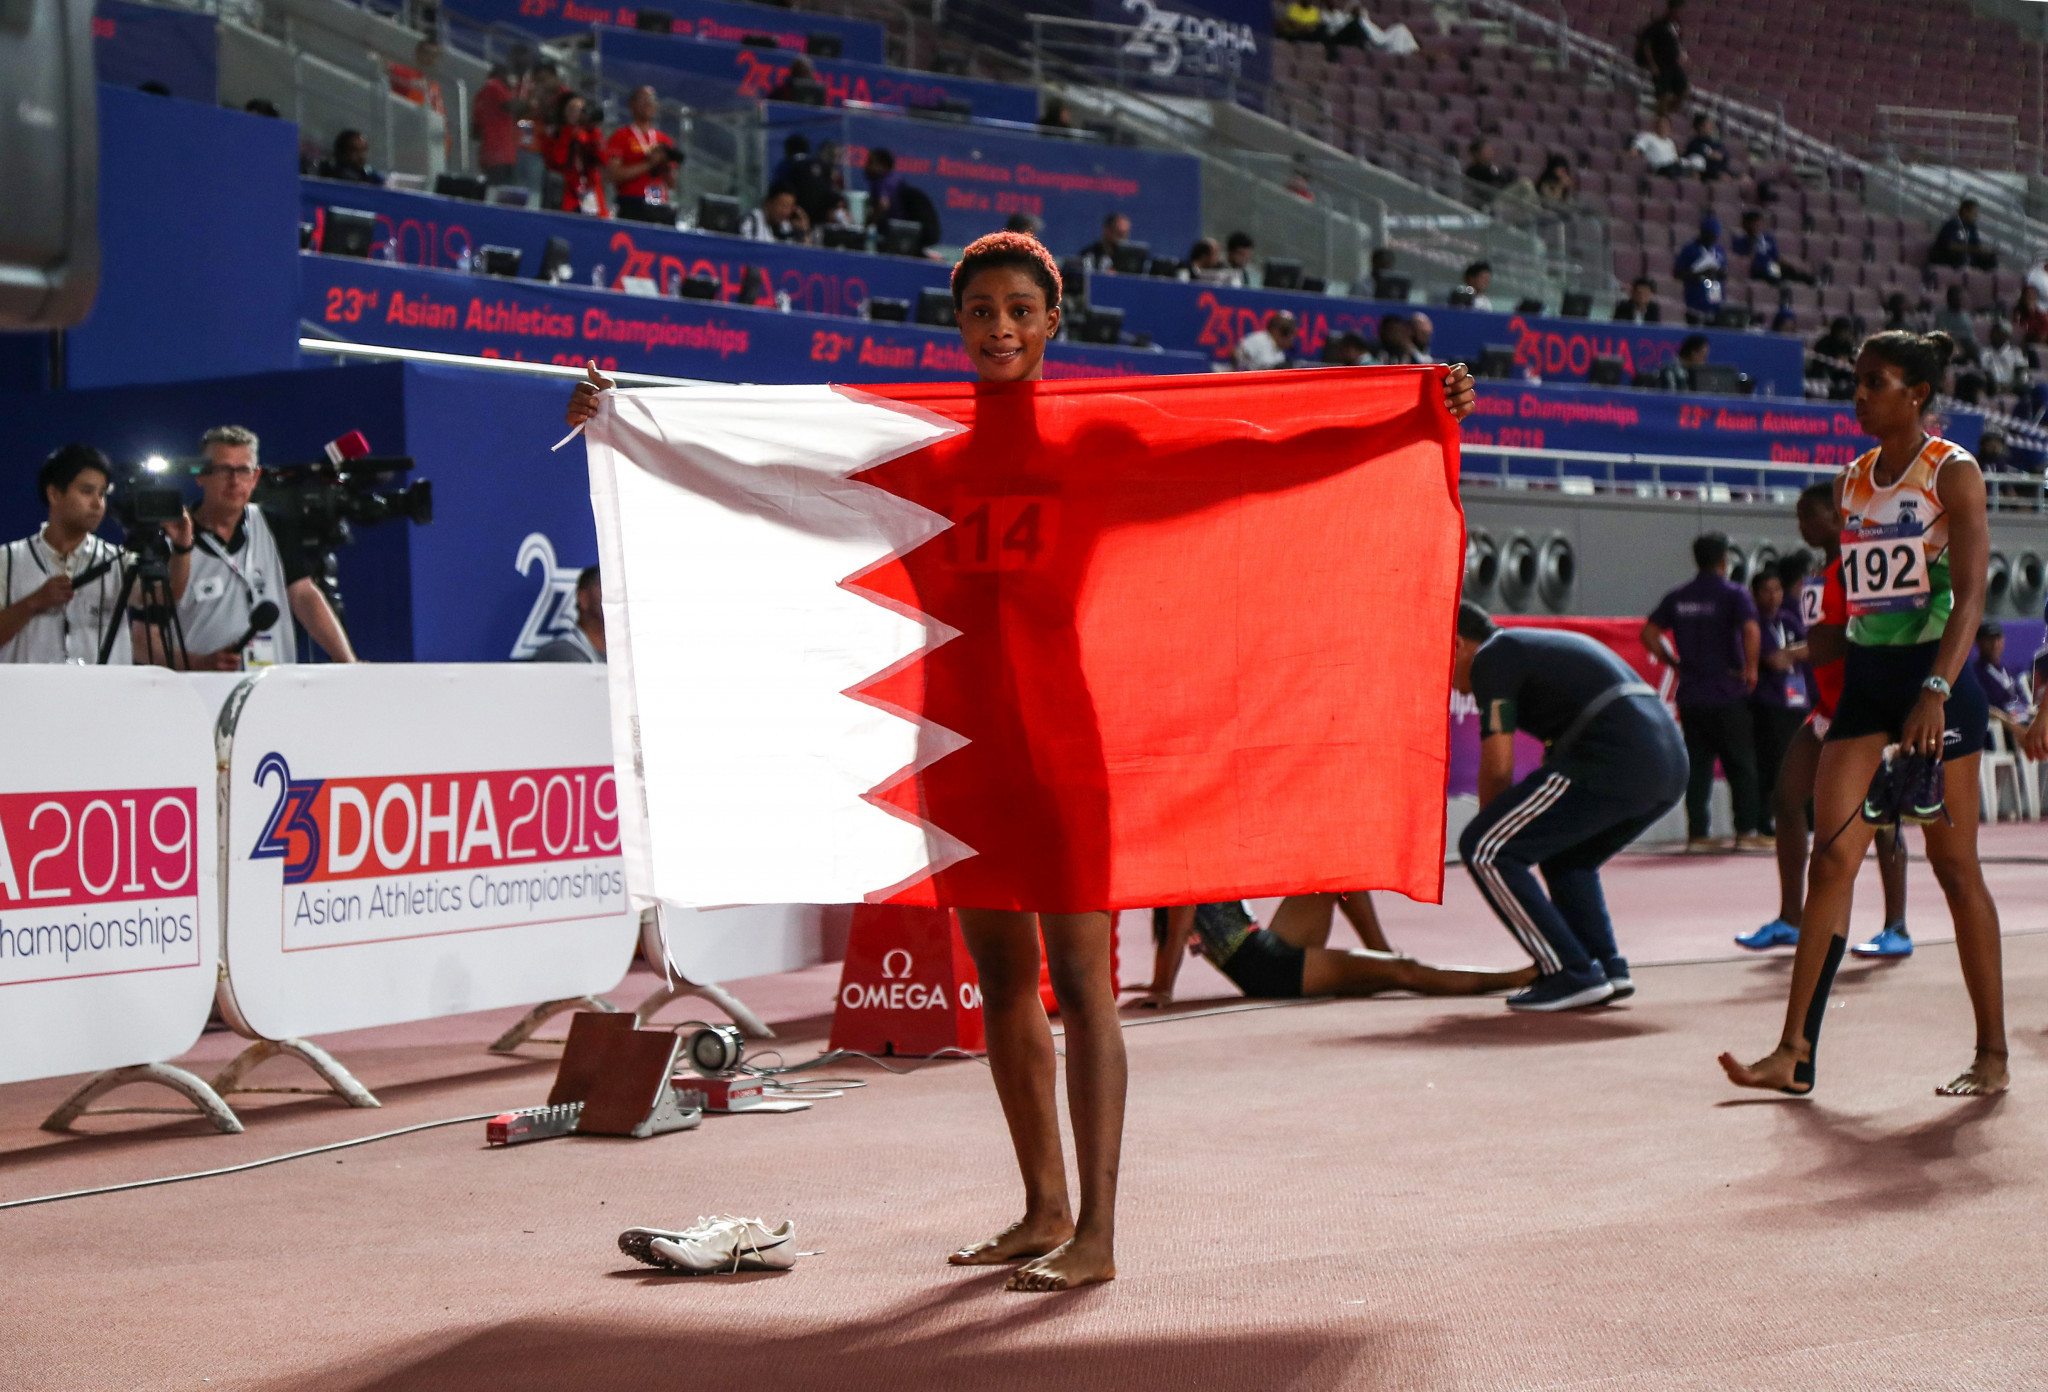 Bahrain's Salwa Naser took her fourth gold on the final day of the Asian Athletics Championships in Doha ©Getty Images